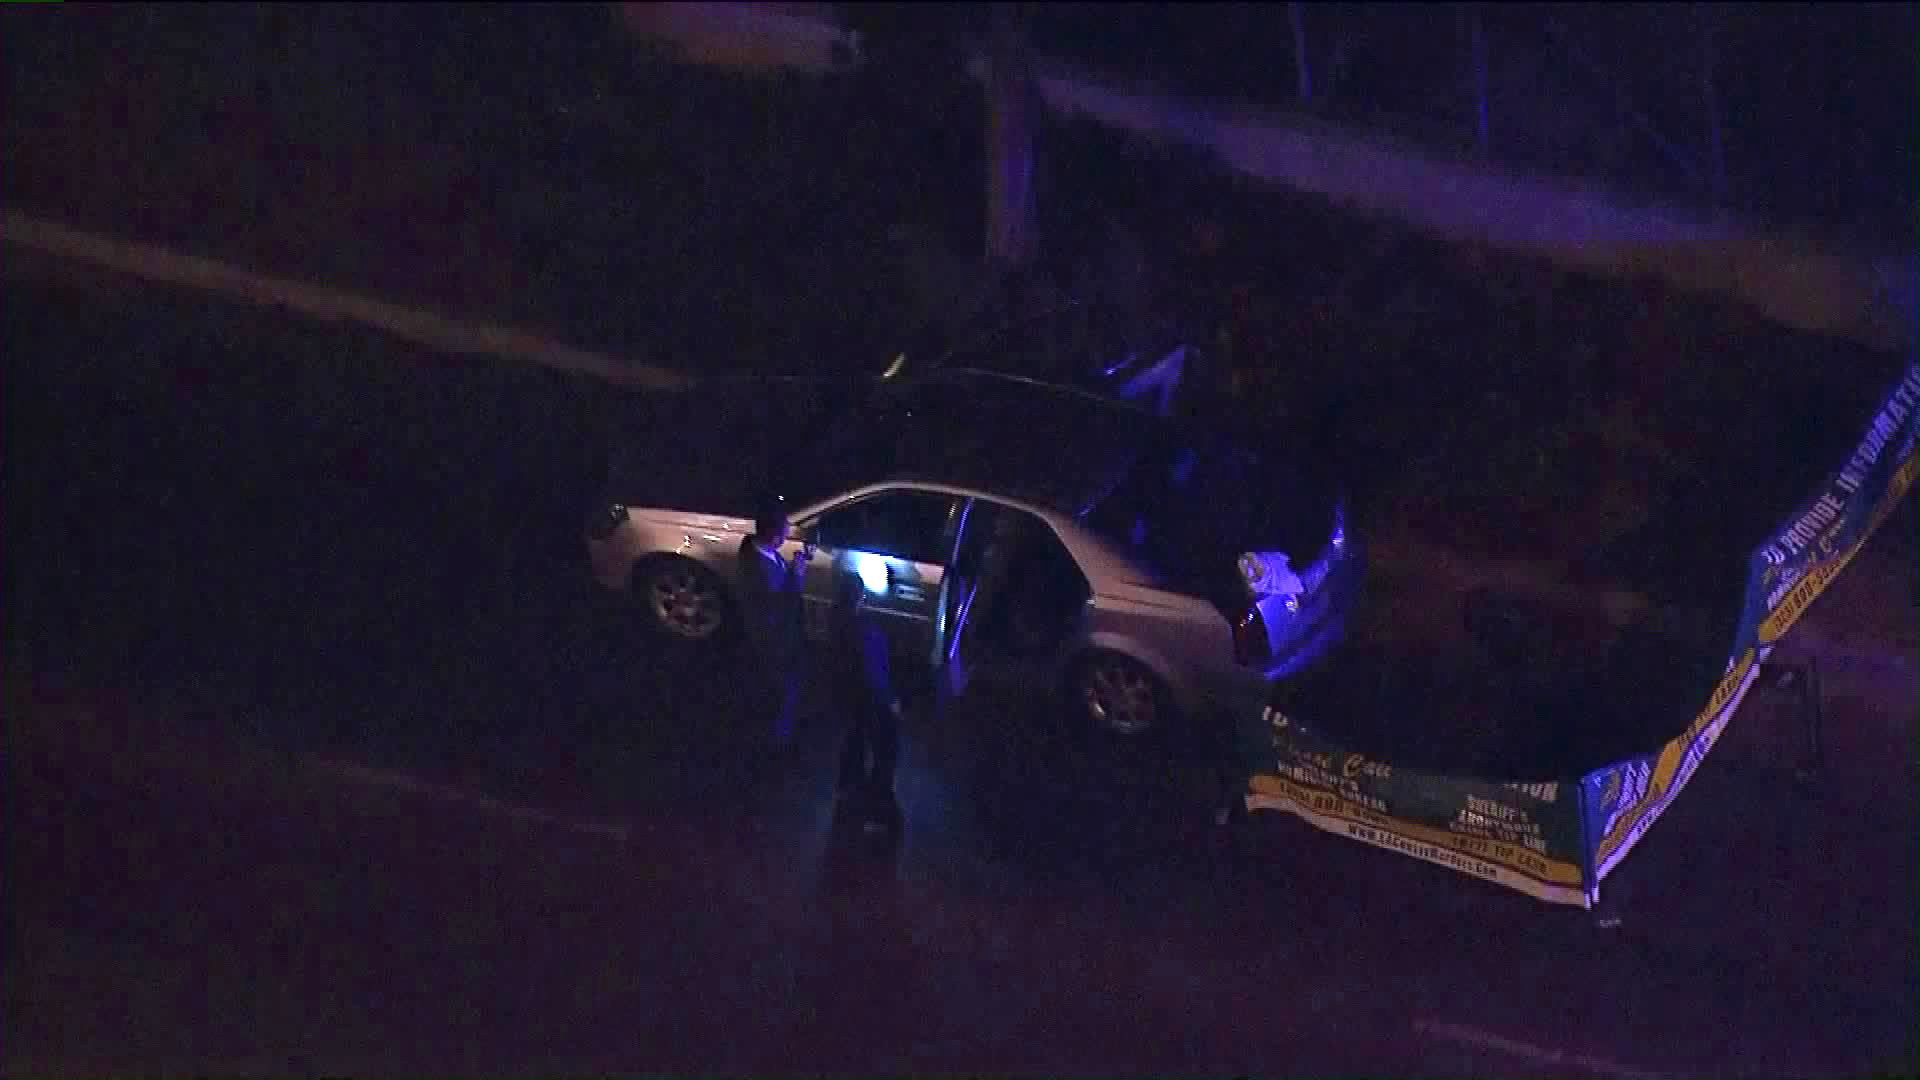 Authorities investigate the death of a man found shot in his car in Compton on Oct. 5, 2018. (Credit: KTLA)